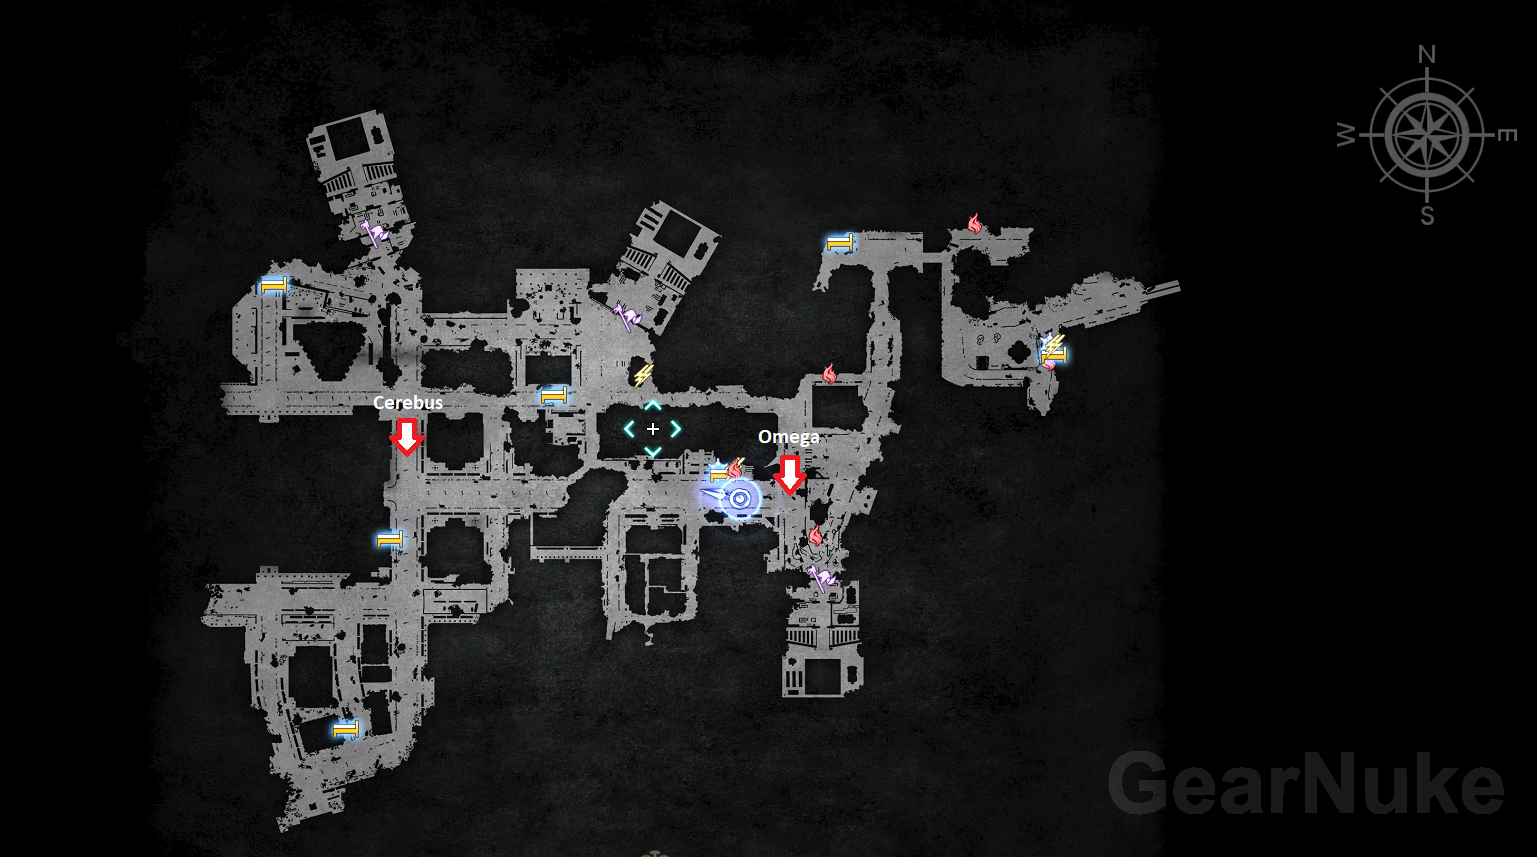 Final Fantasy XV Royal Edition: Insomnia City Ruins World Map, Boss on wasp map, star trek universe map, space station map, cartier map, gta 5 spaceship parts location map, crystal map, nike map, nelson map, deming map, albany map, gorgon map, star fleet universe map, american empire map, star trek galactic map, newton map, orient map, changjiang map, downtown richmond map, pe map, monroe map,